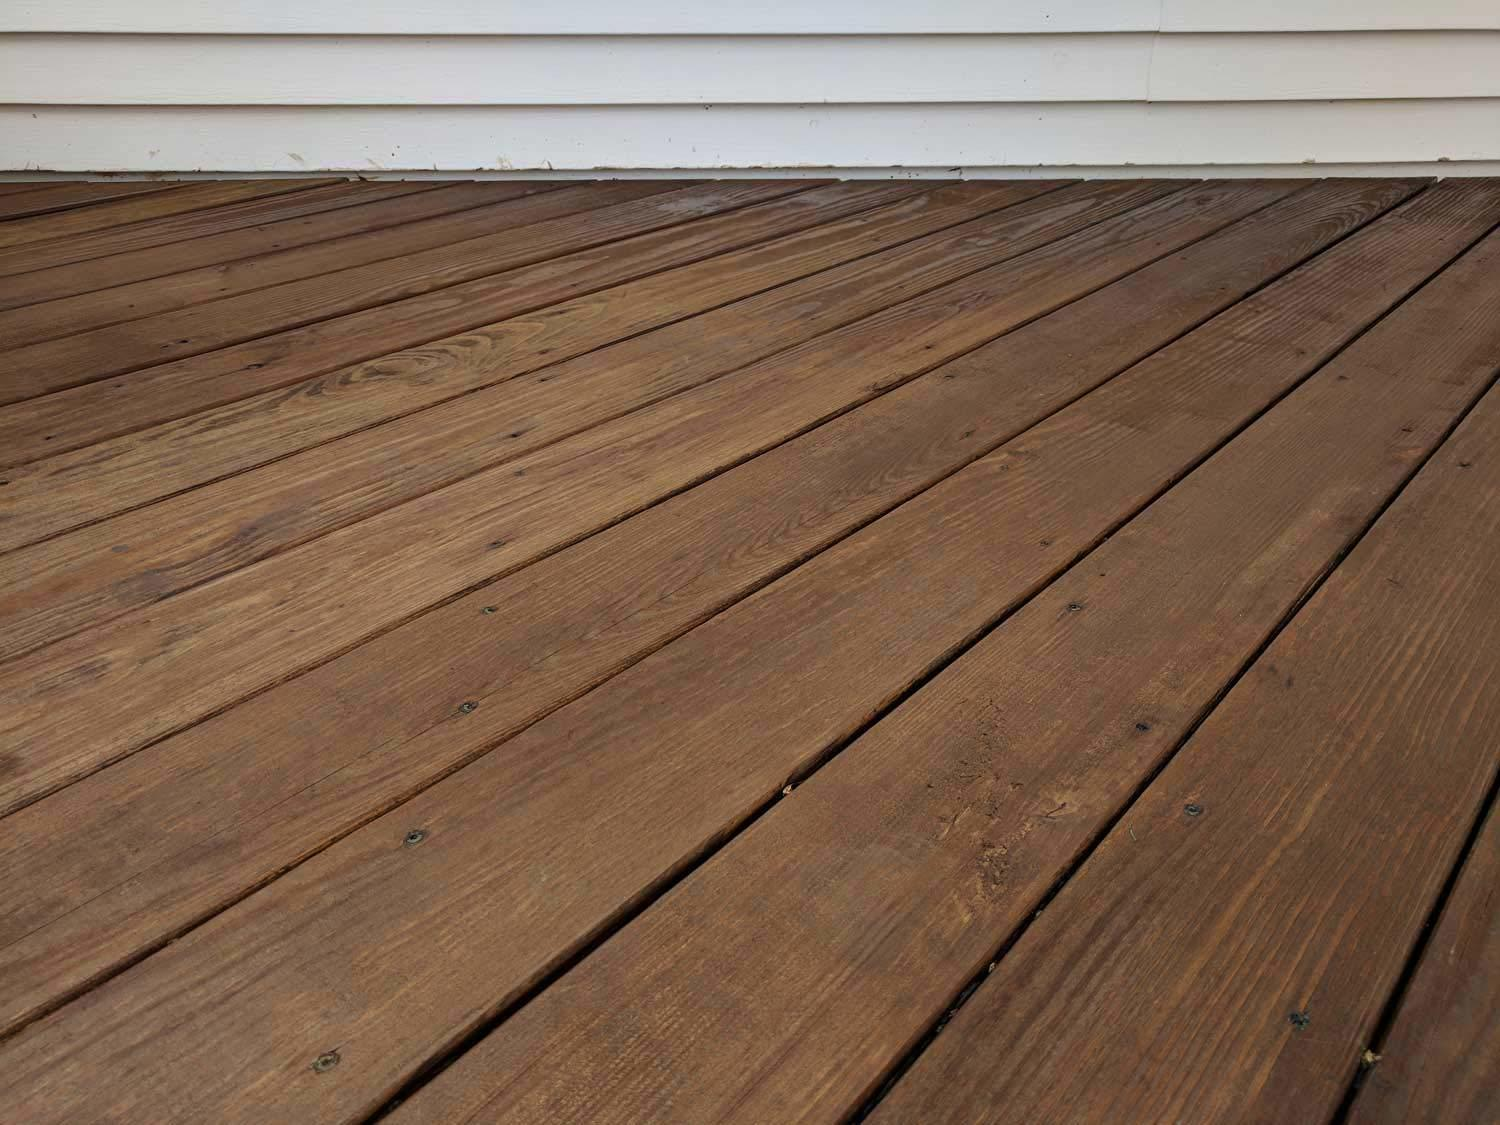 #1 Deck Stain - Premium Semi-Transparent Wood Stain for Decks 2